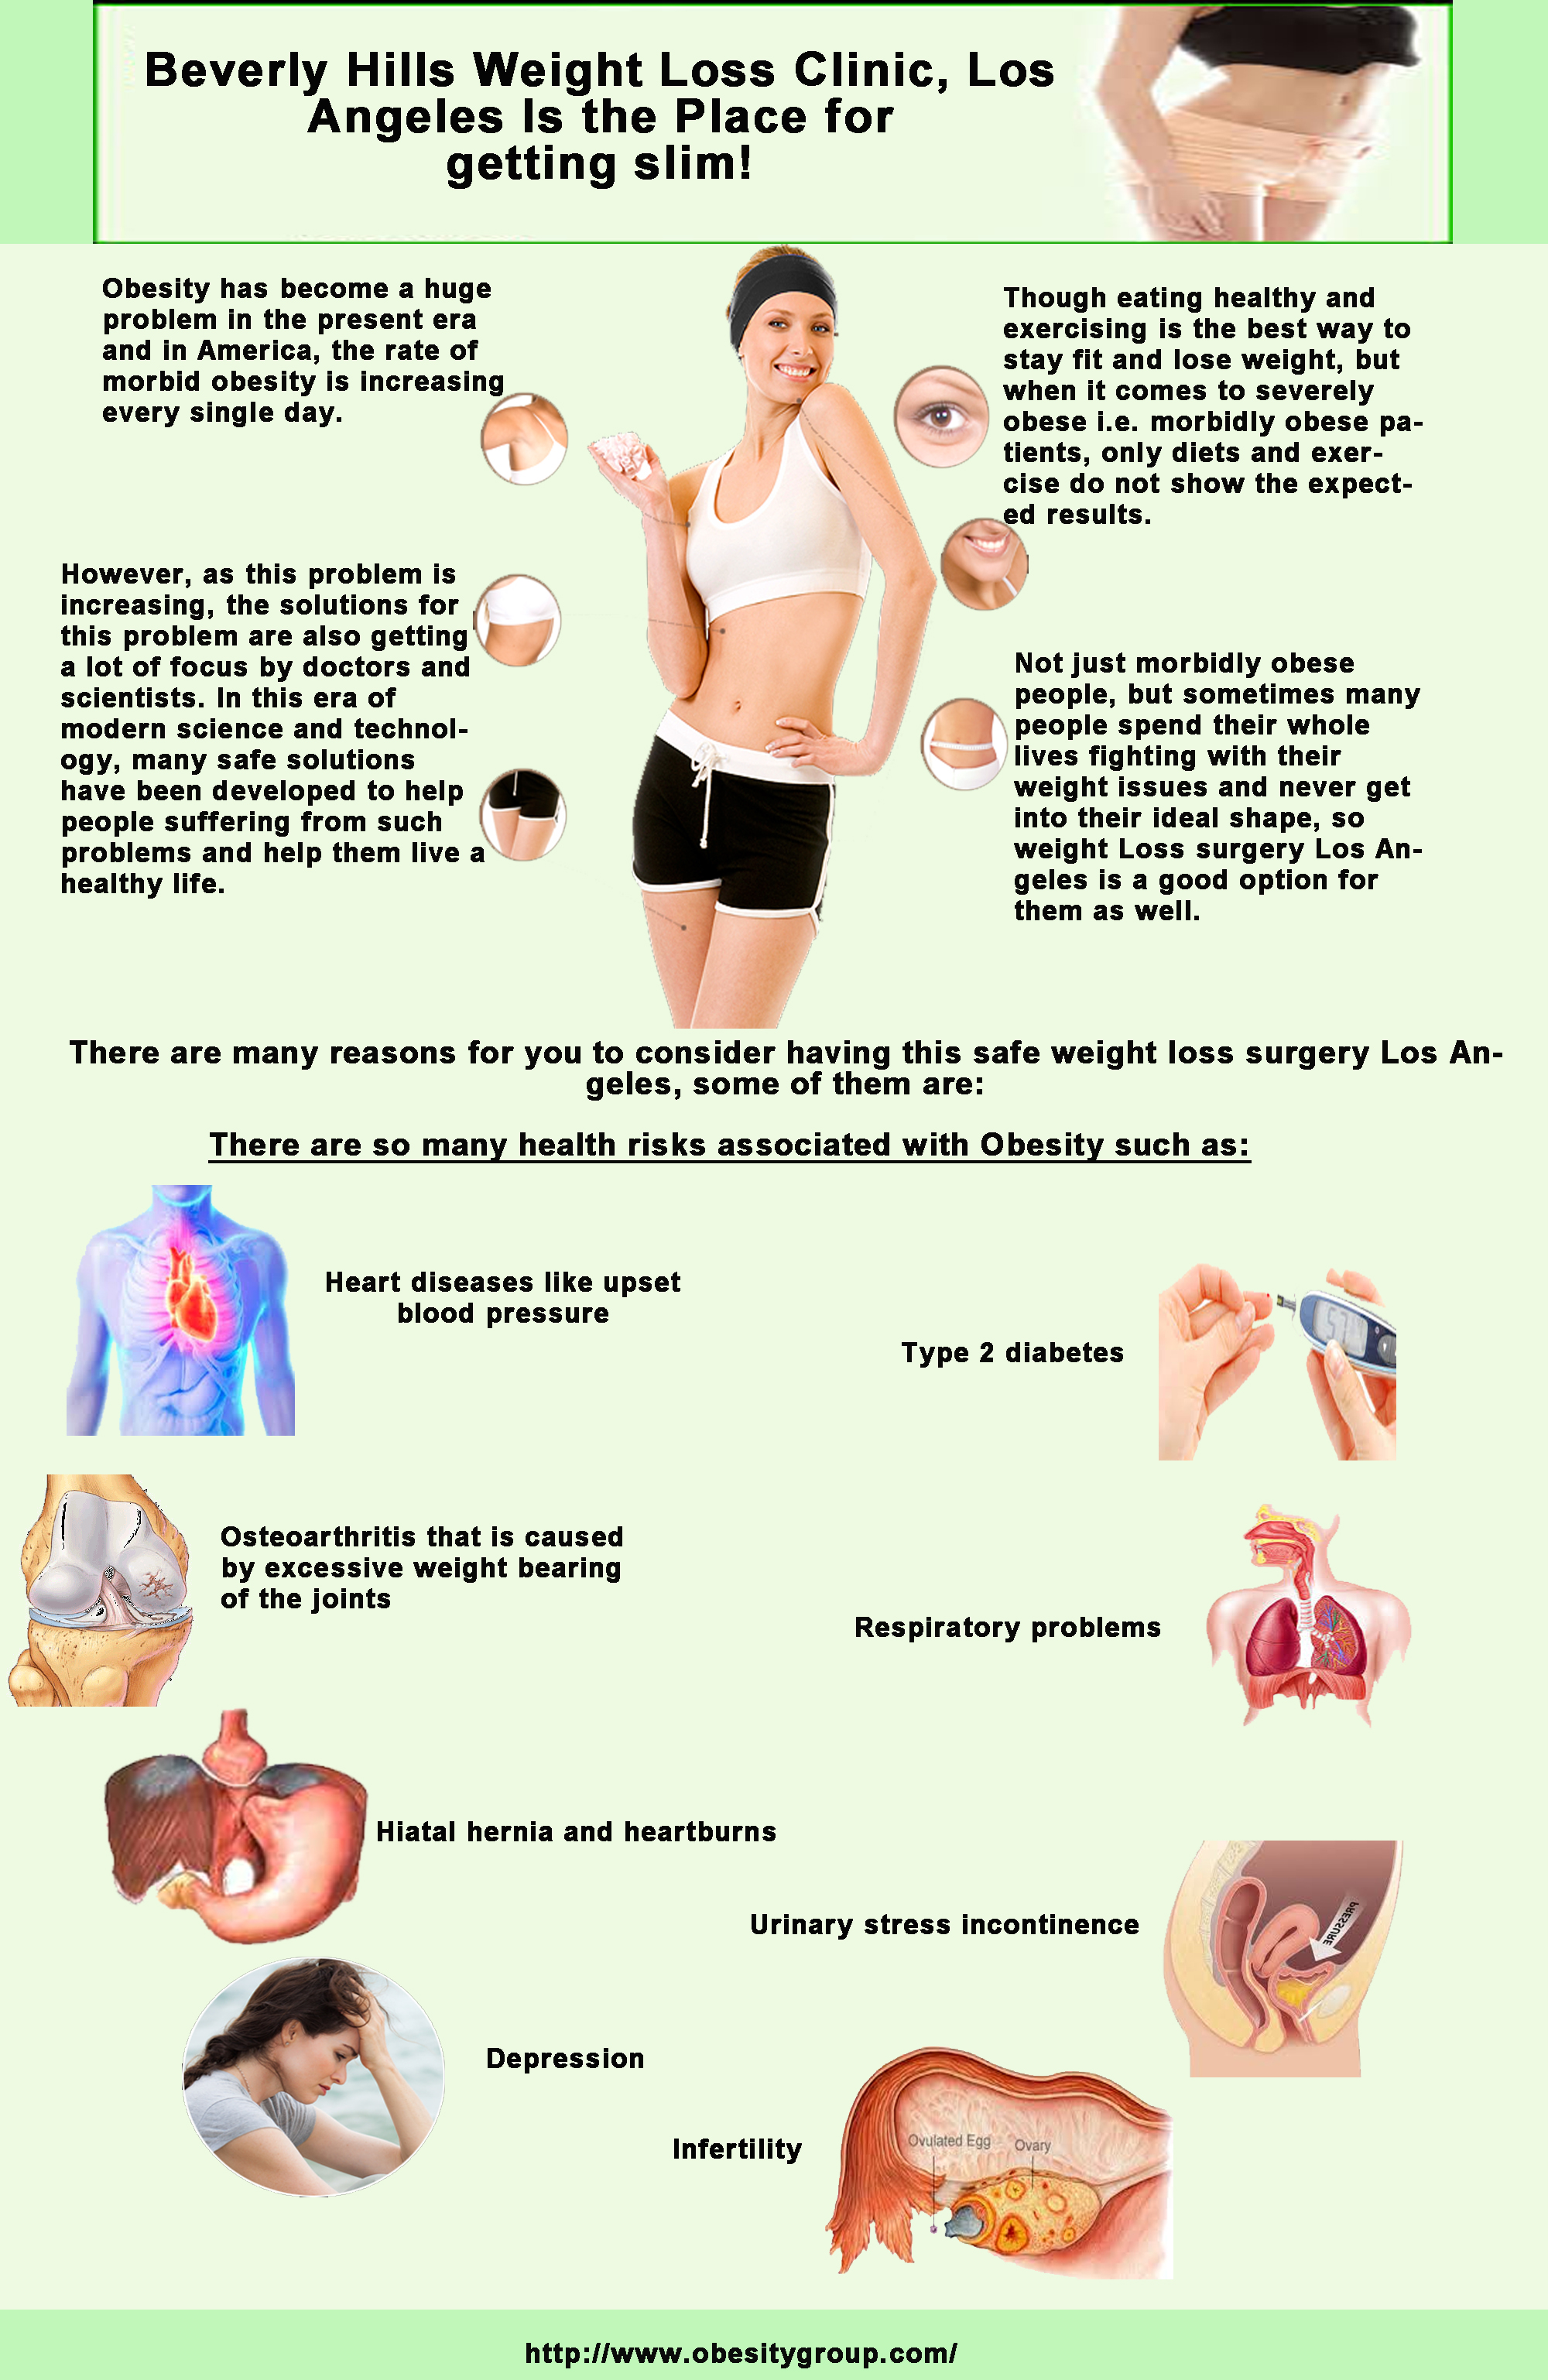 Beverly Hills Weight Loss Clinic Los Angeles Is The Place For